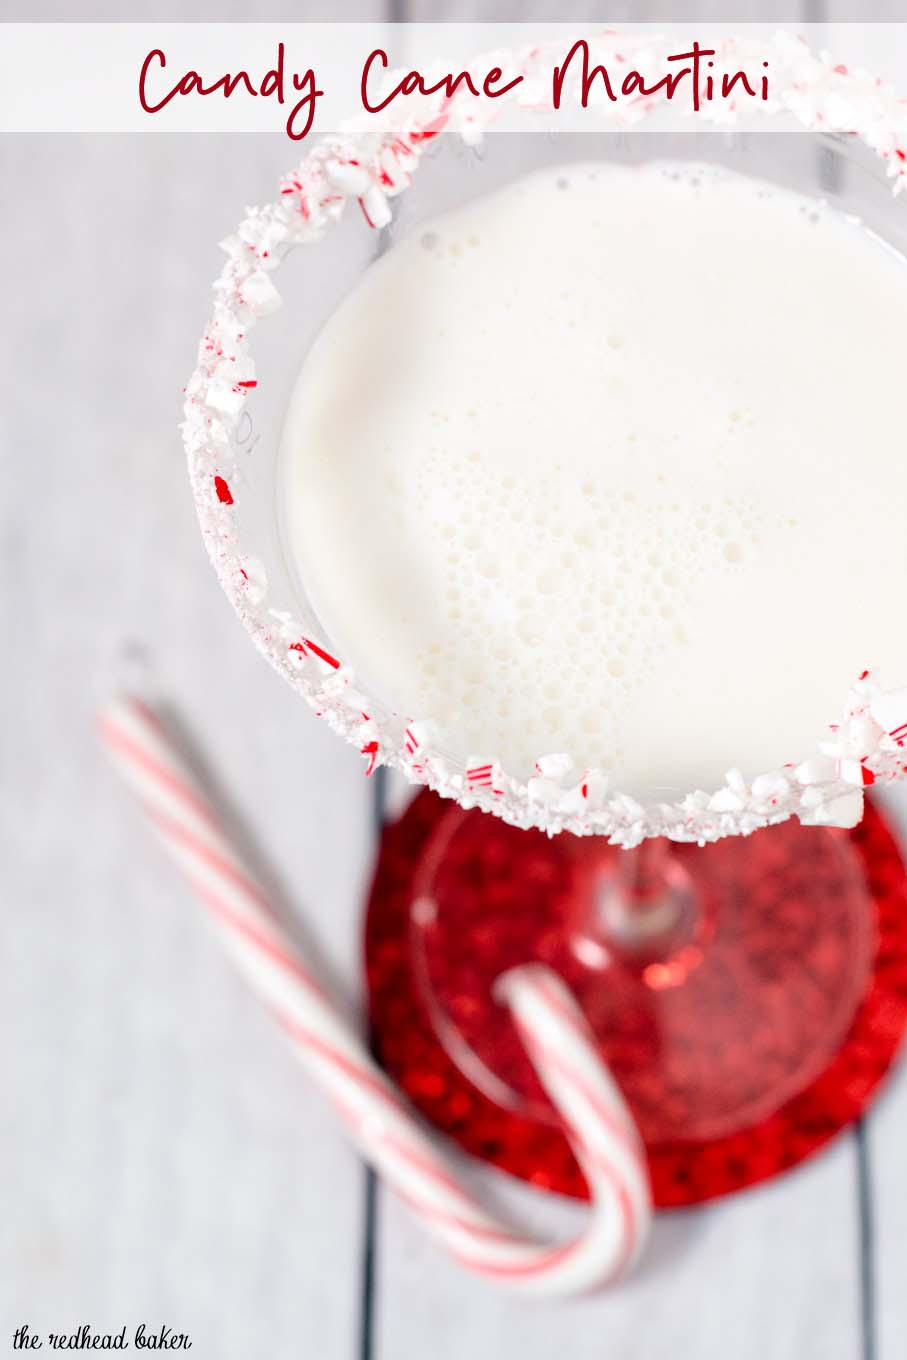 It doesn't get more festive than a candy cane martini for the holidays! Shake up a batch of this creamy cocktail for your holiday party. #ProgressiveEats